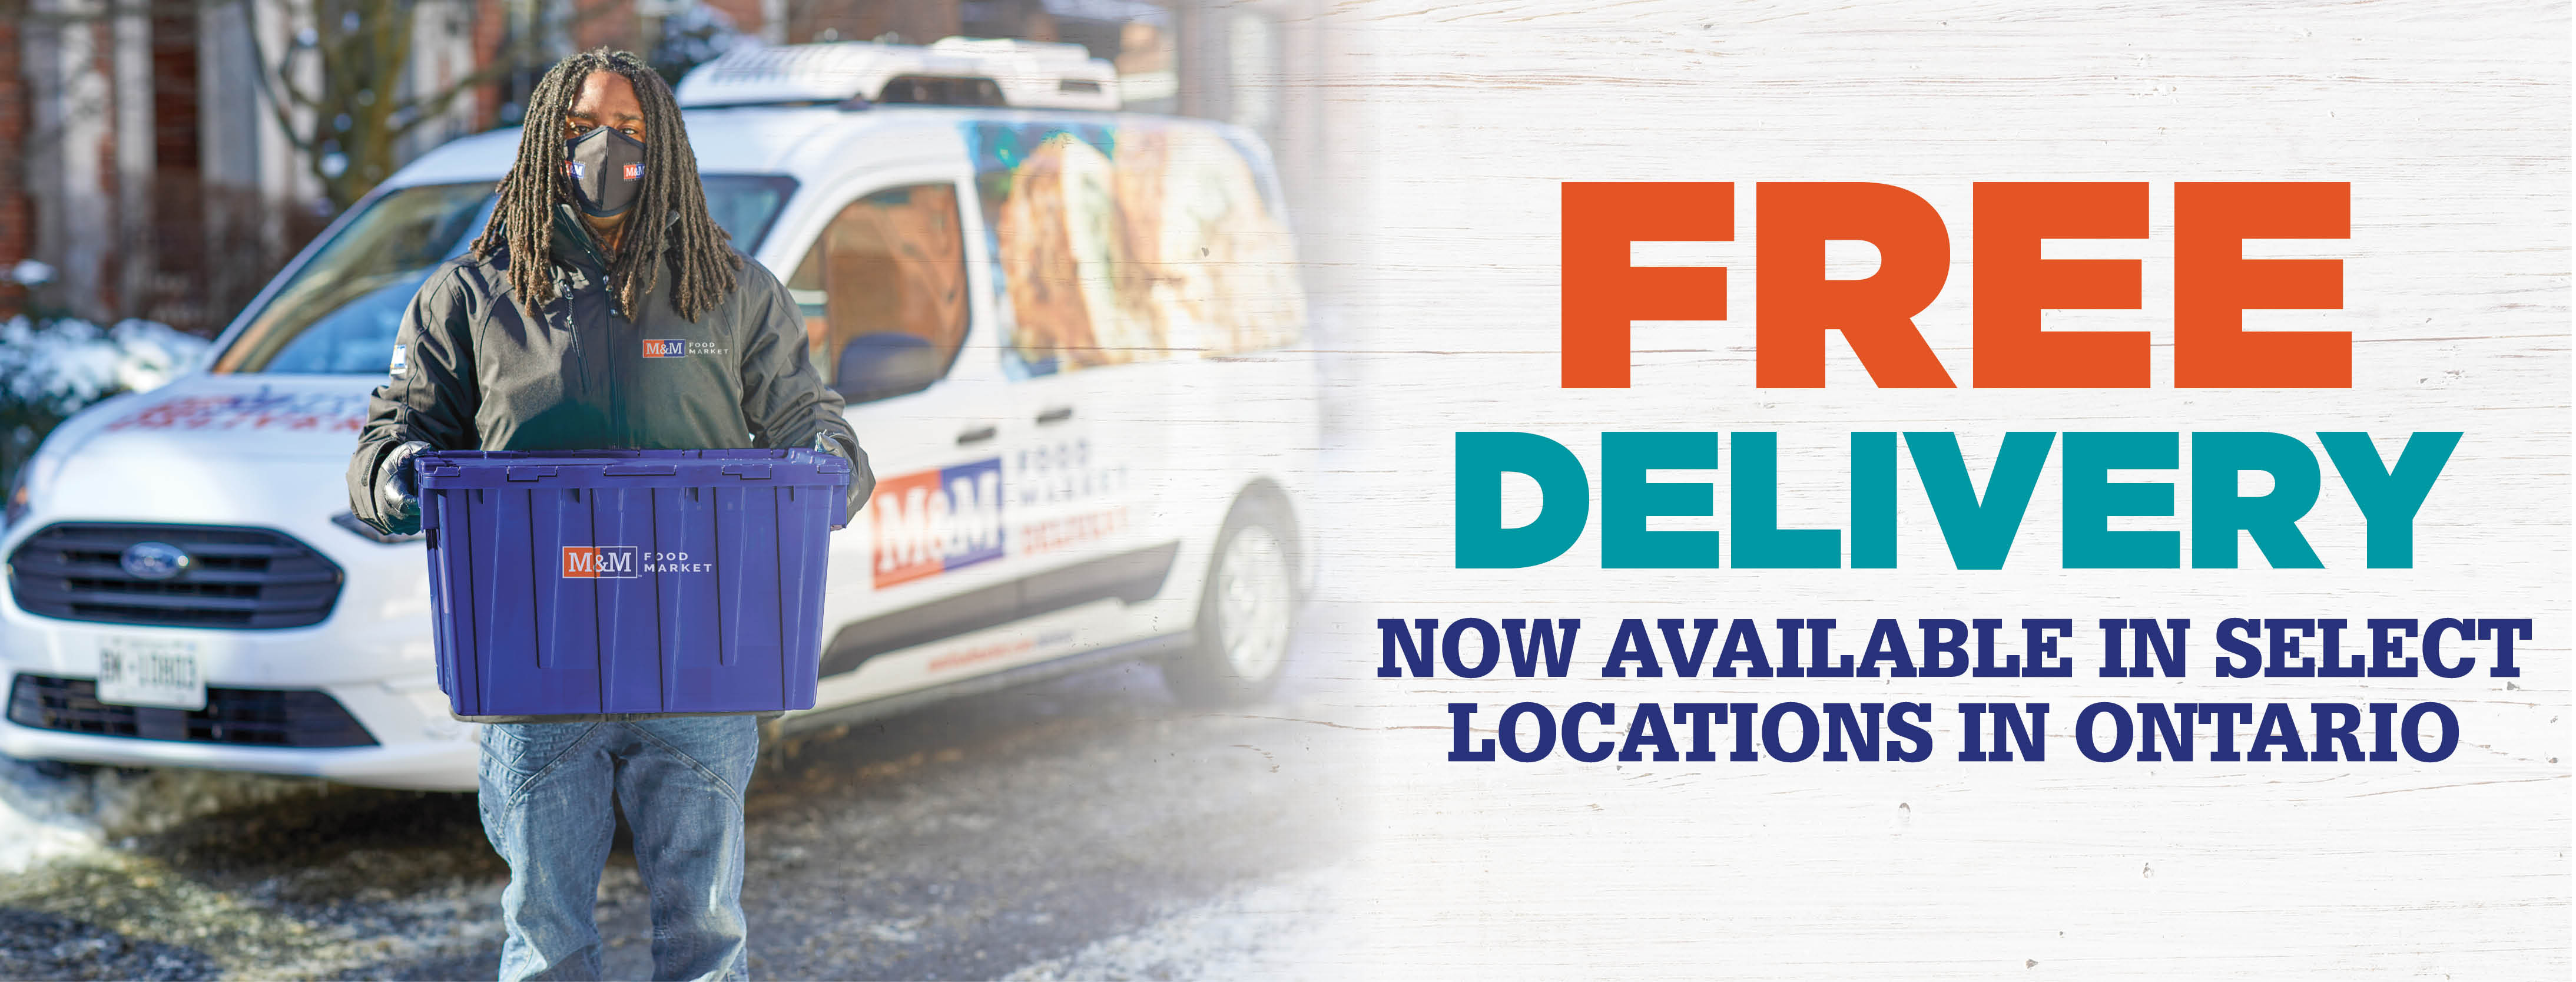 FREE Delivery now available in select locations in Ontario